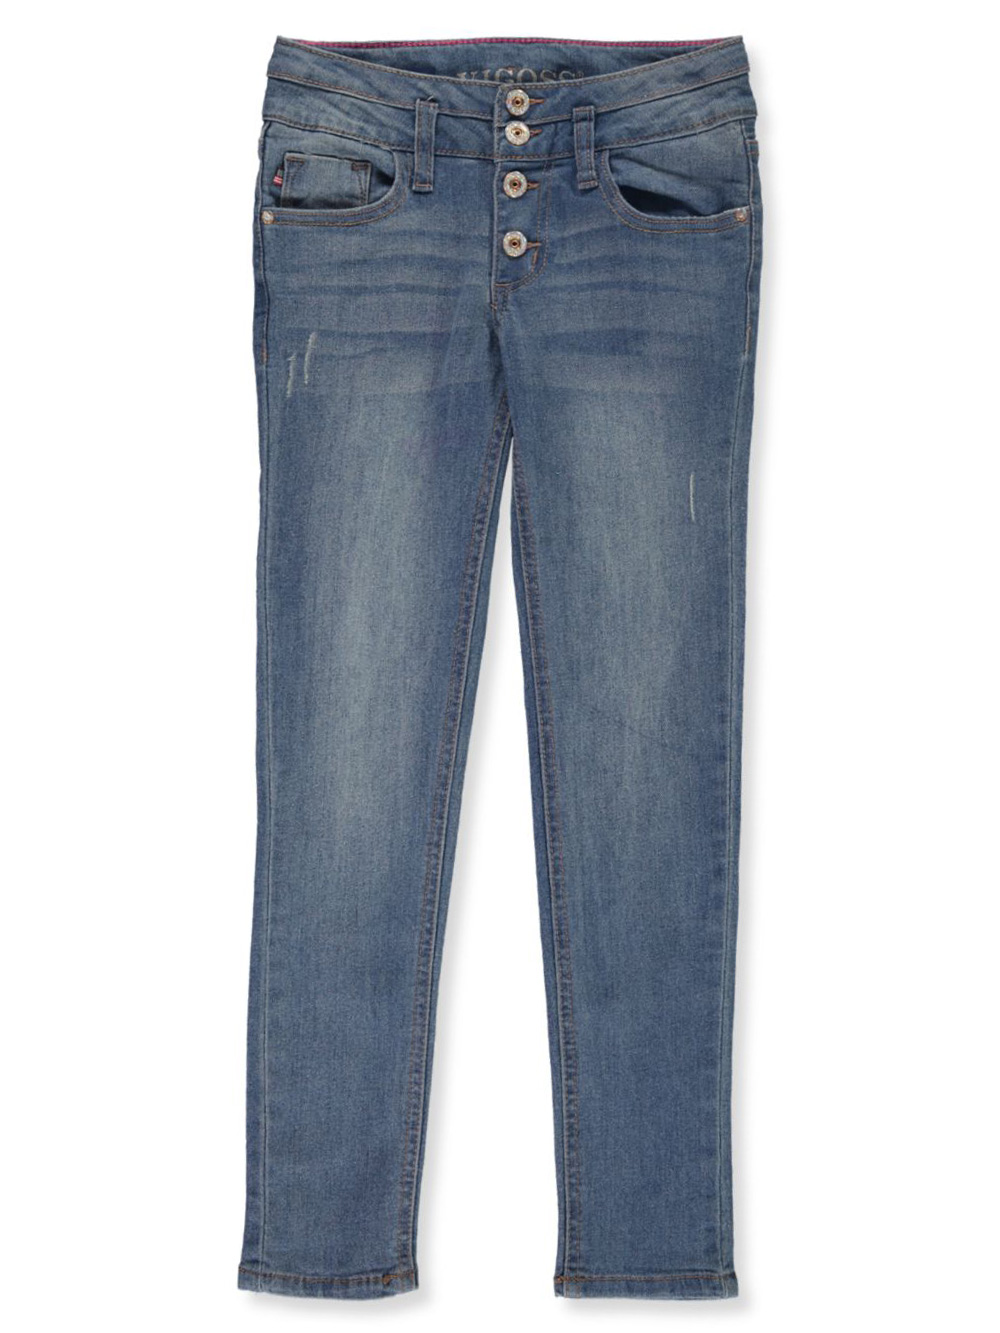 Girls' Button Fly Skinny Jeans